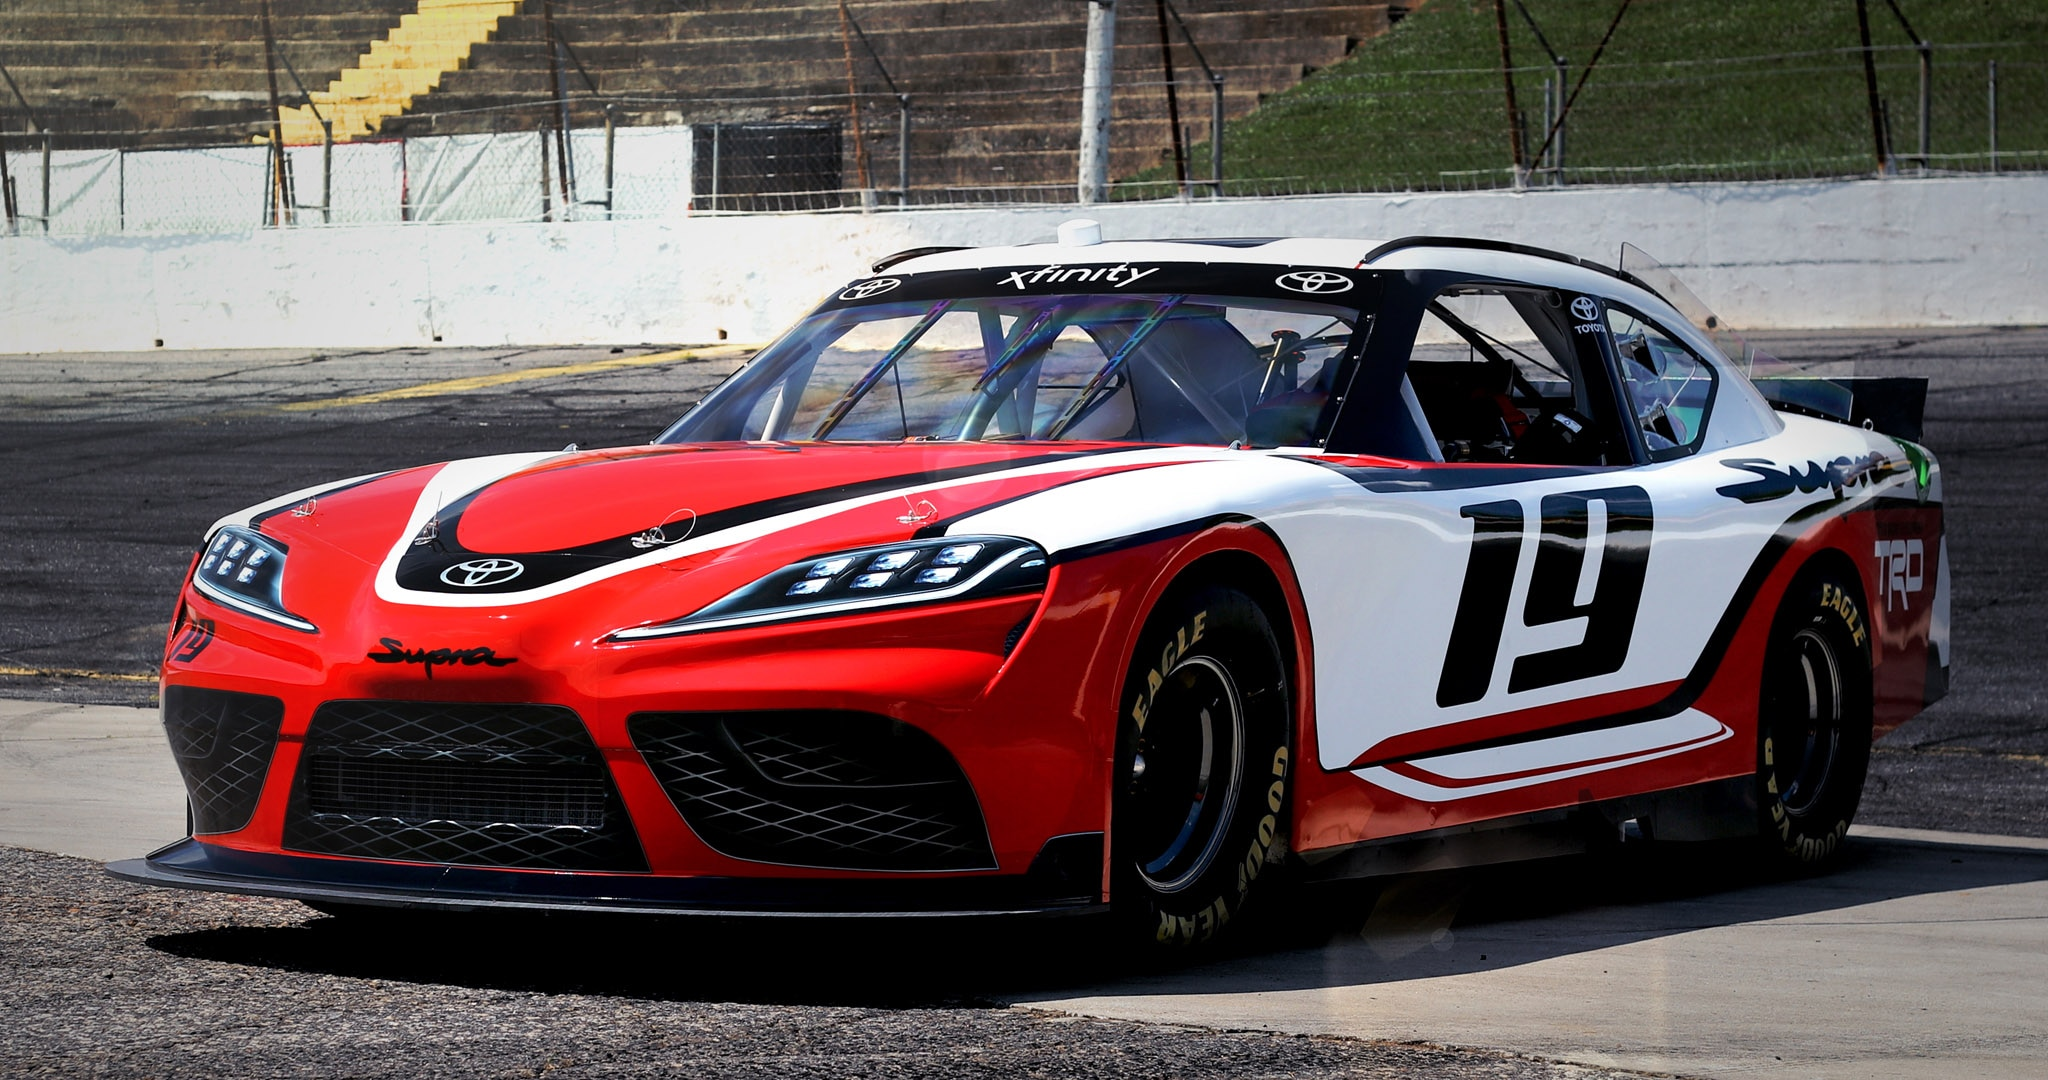 VWVortex.com - Toyota Supra revealed for the 2019 NASCAR ...